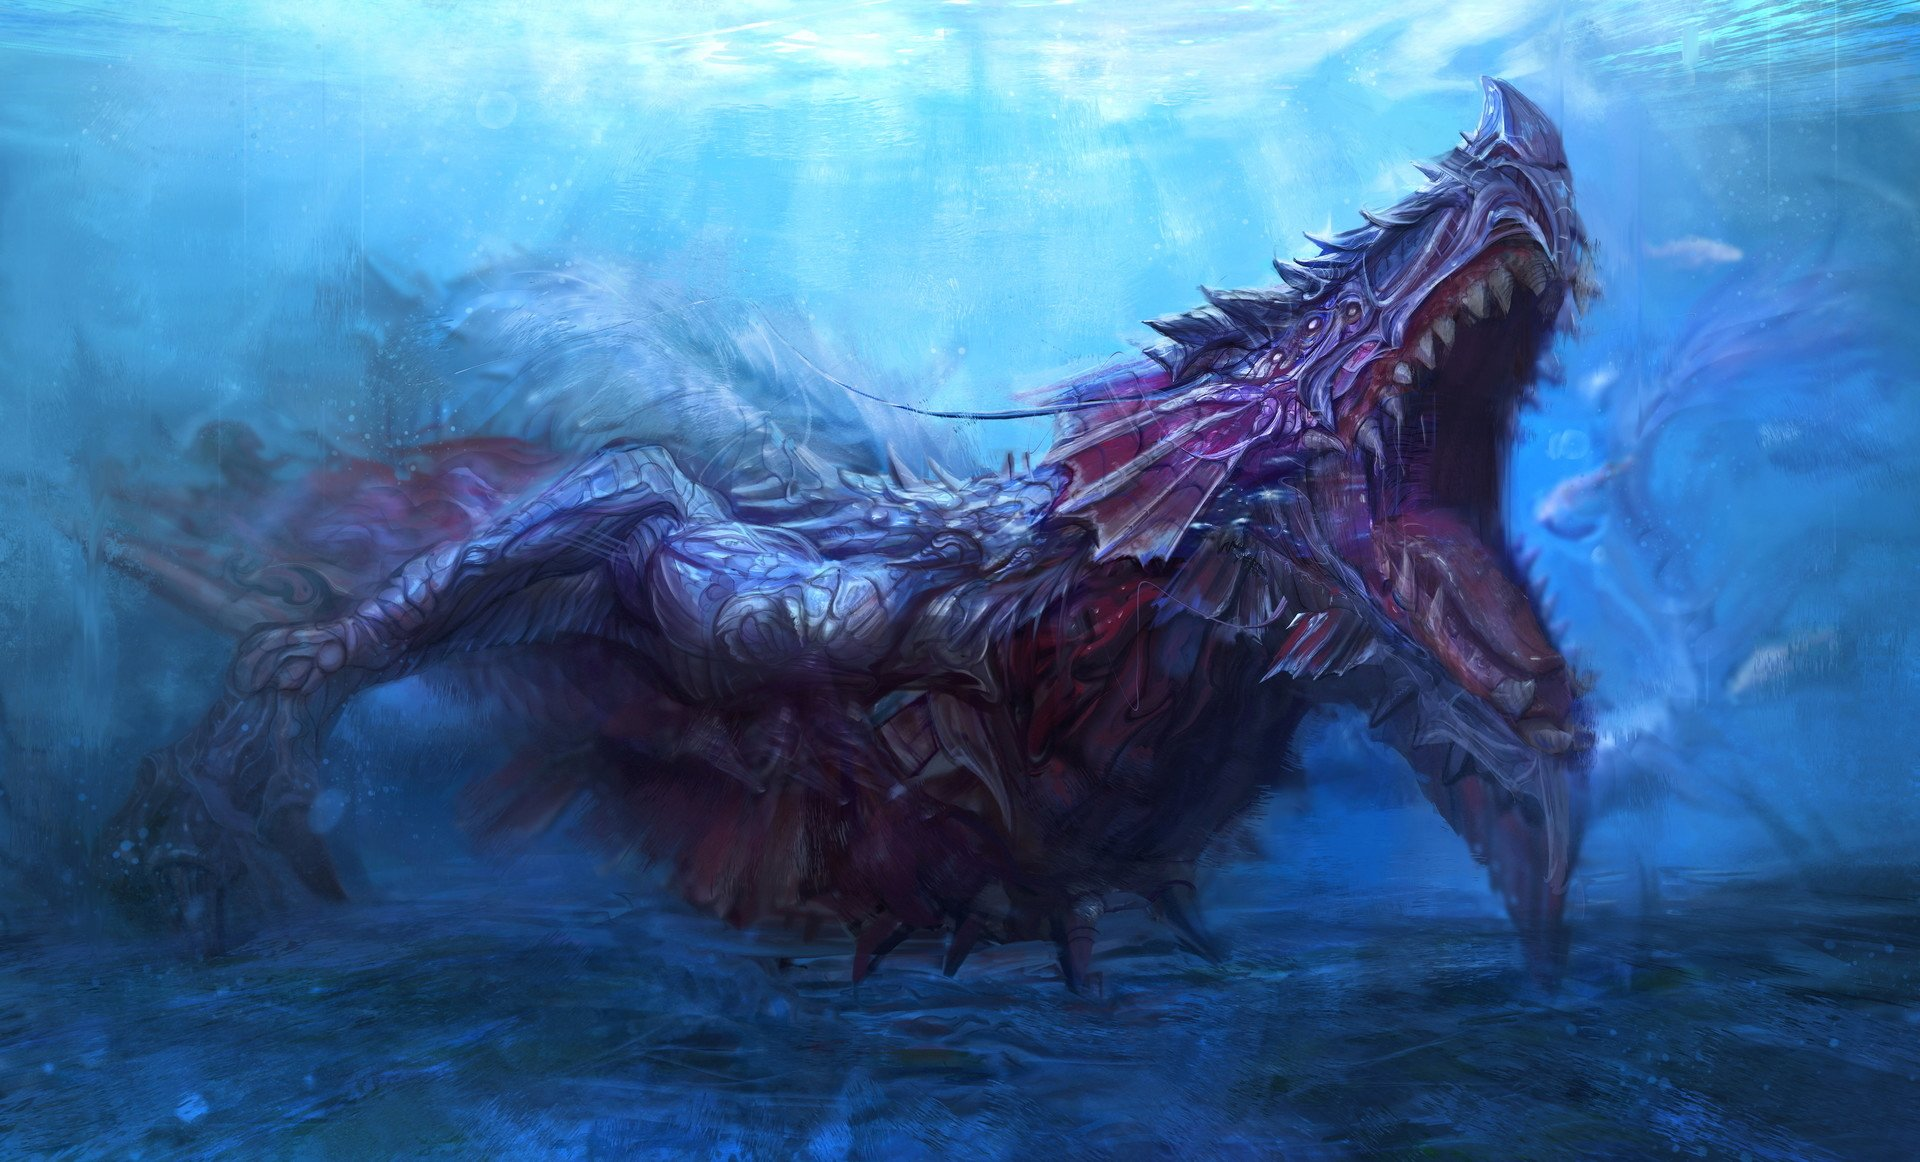 sea monster hd wallpaper background image 1920x1162